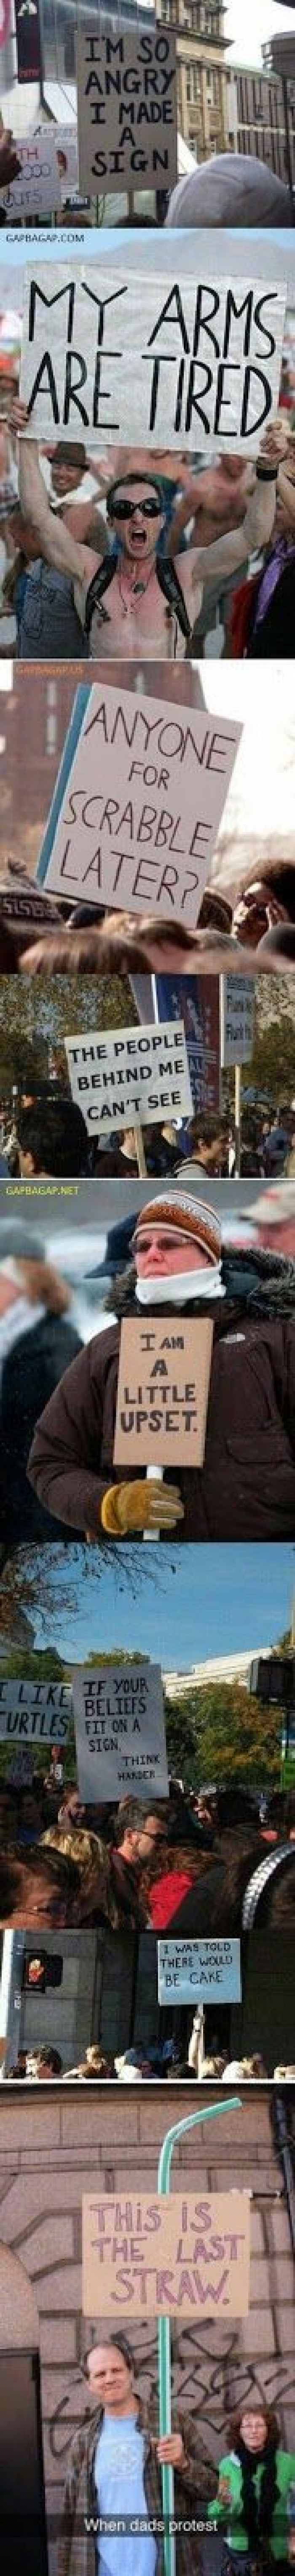 8 Funny Protest Signs... Wait For The Last One